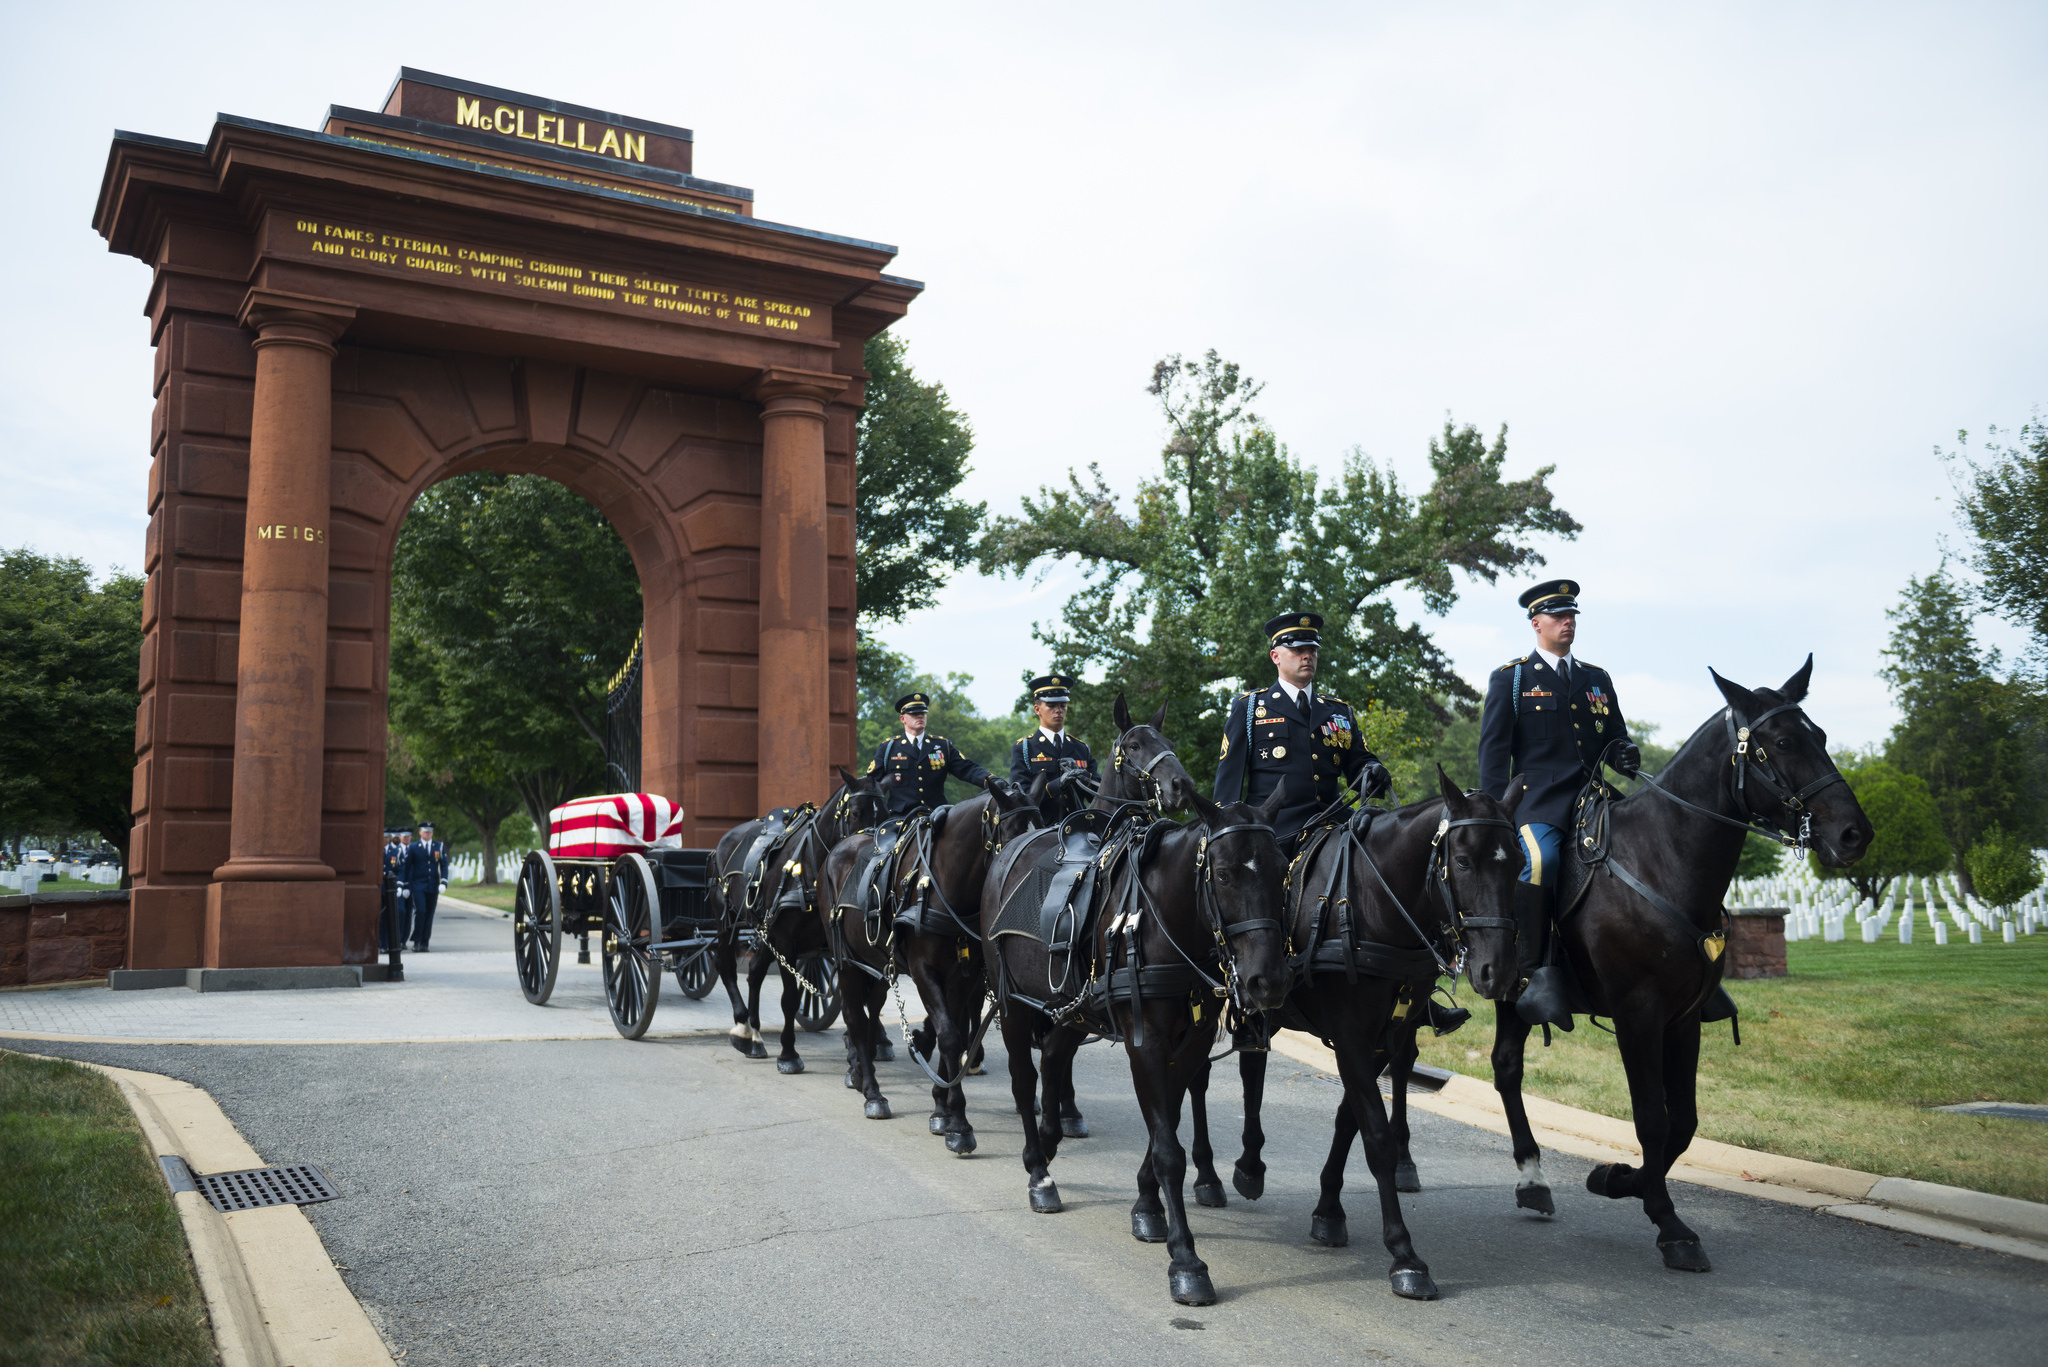 A horse-drawn caisson in a military funeral honors procession